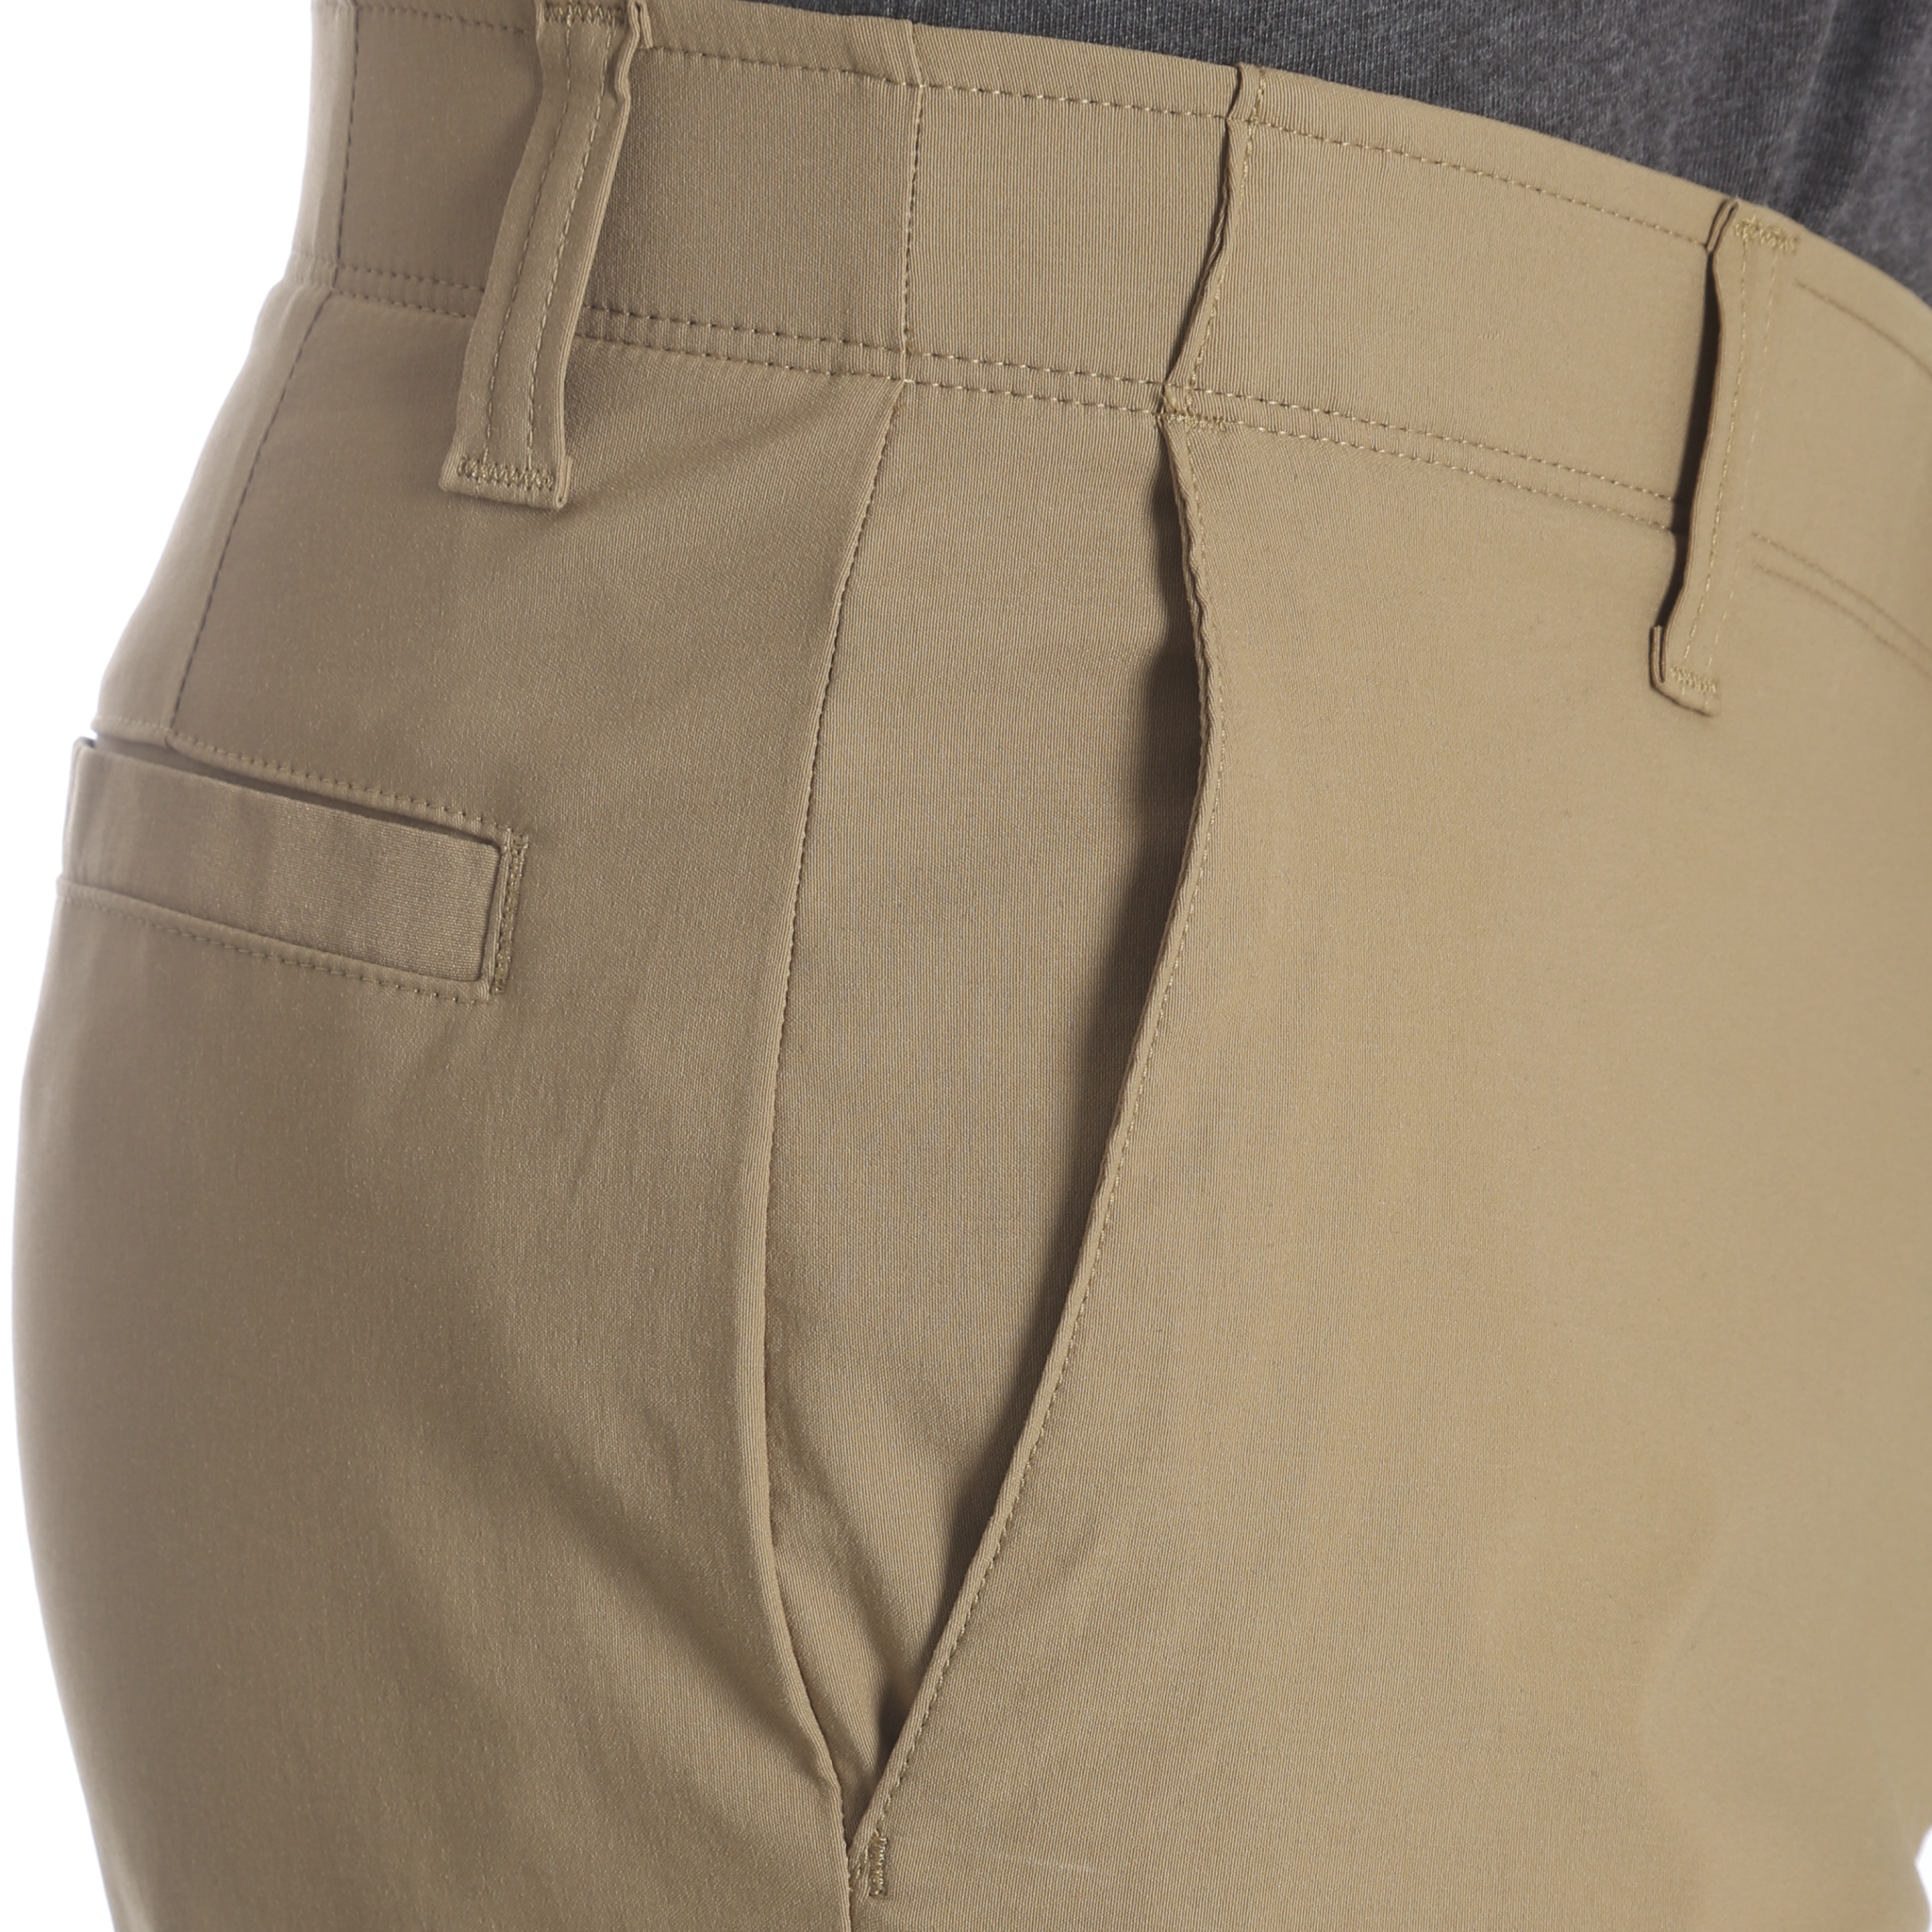 Wrangler-Neuf-Solide-Homme-Performance-Series-Outdoor-Confort-Coupe-Droite-Pantalon miniature 6